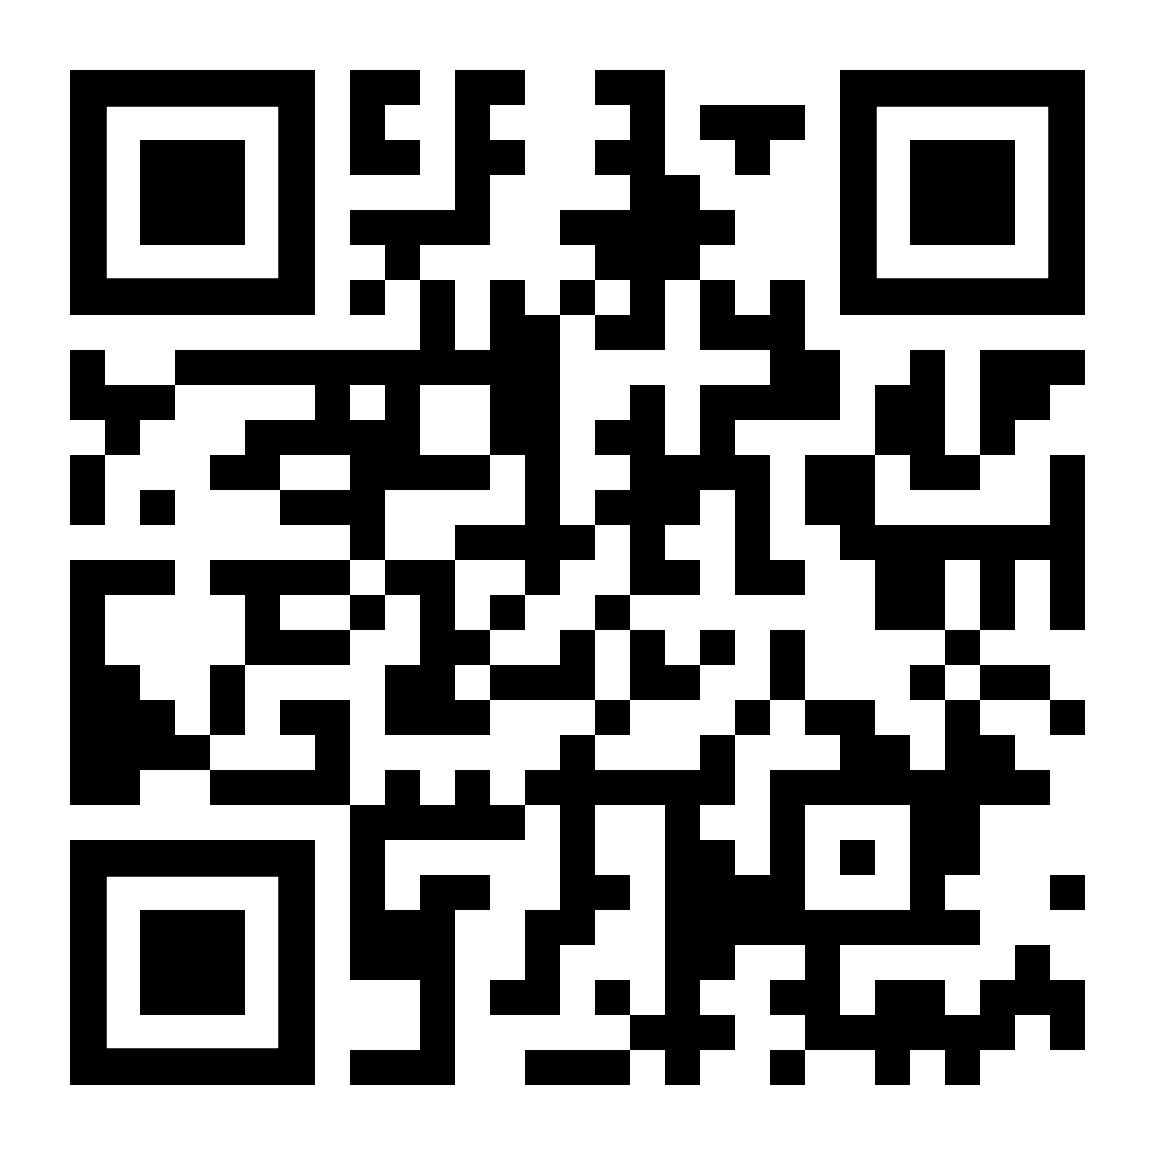 qr-codevideo.png